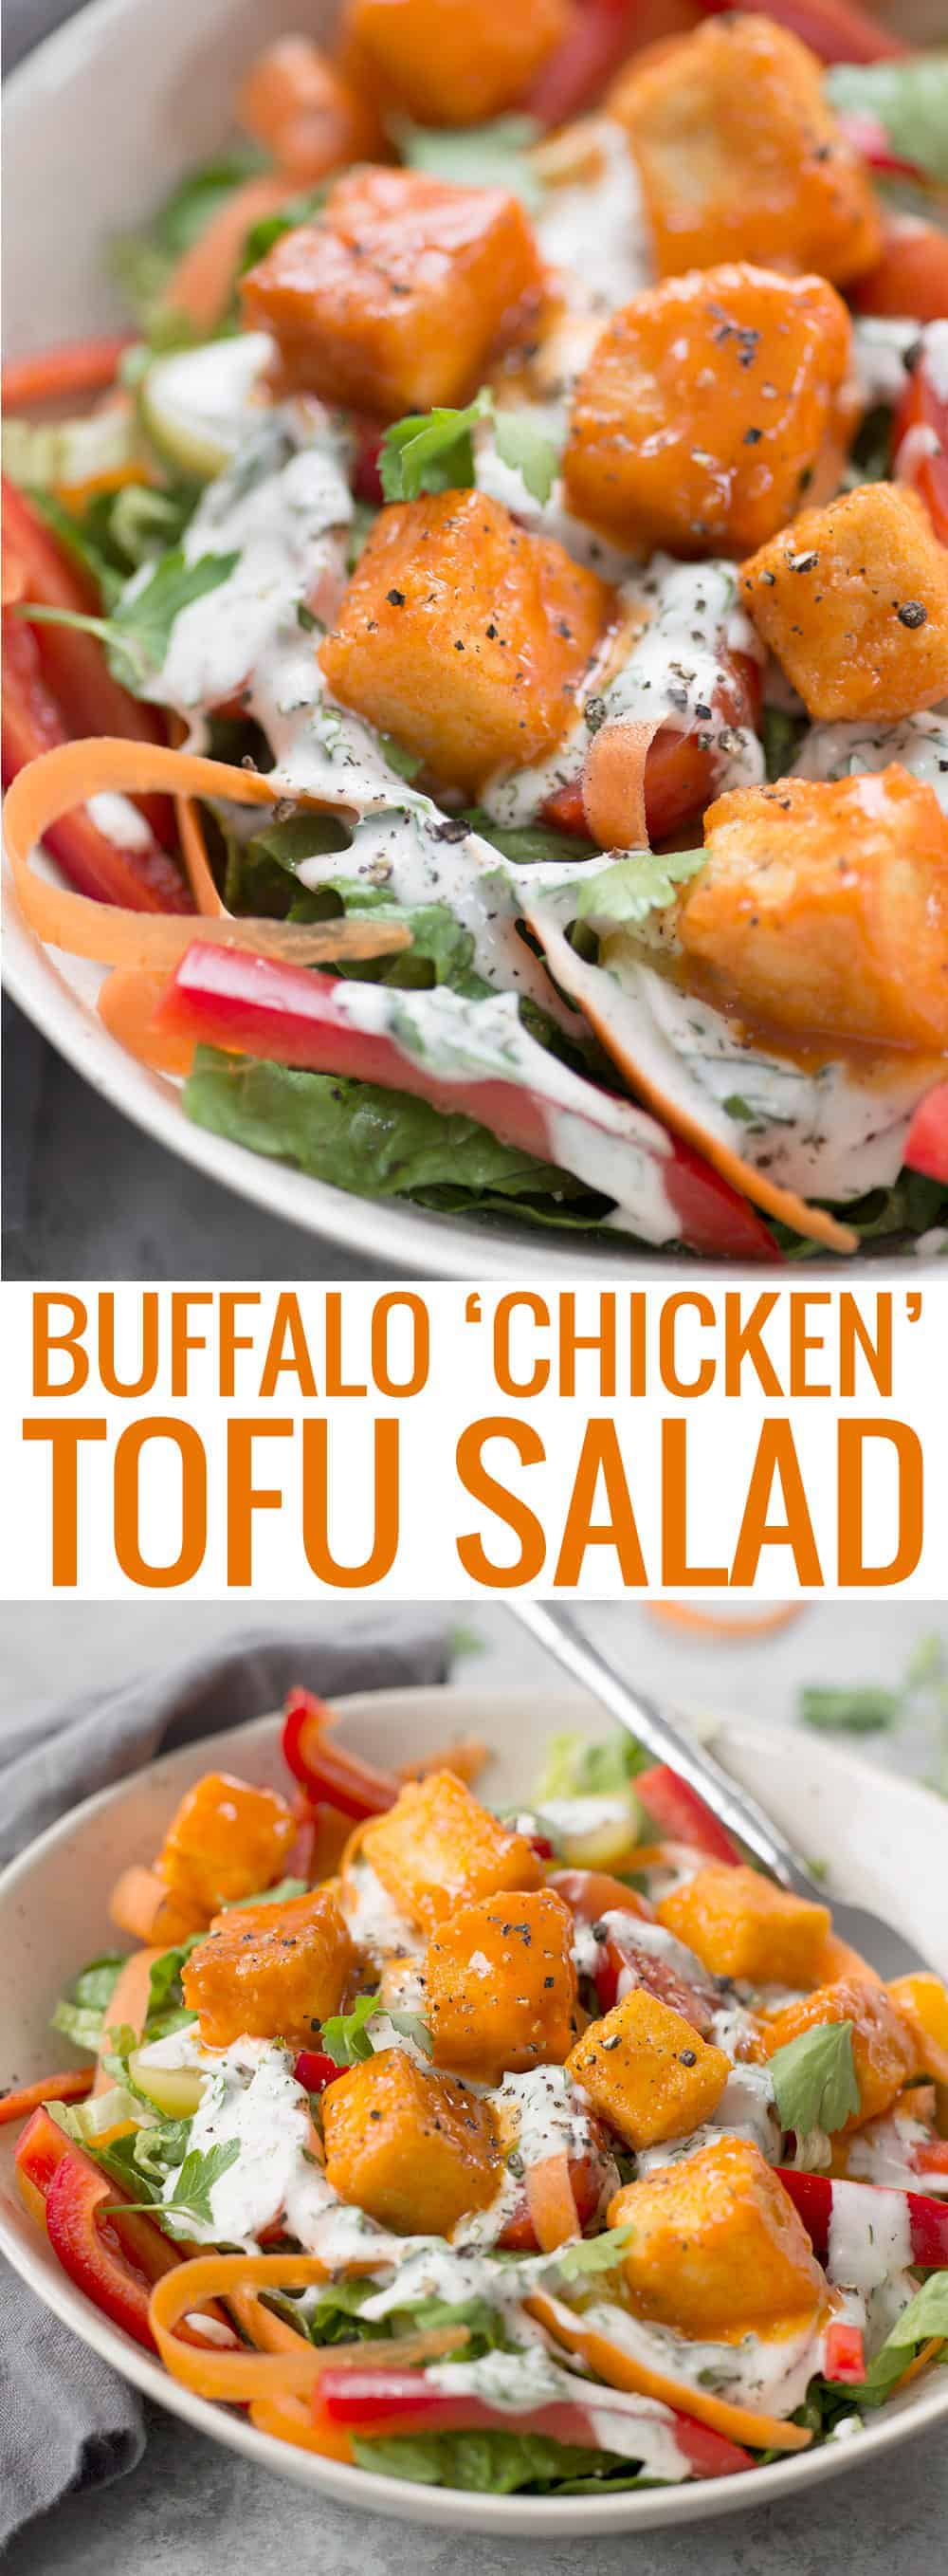 buffalo chicken tofu salad